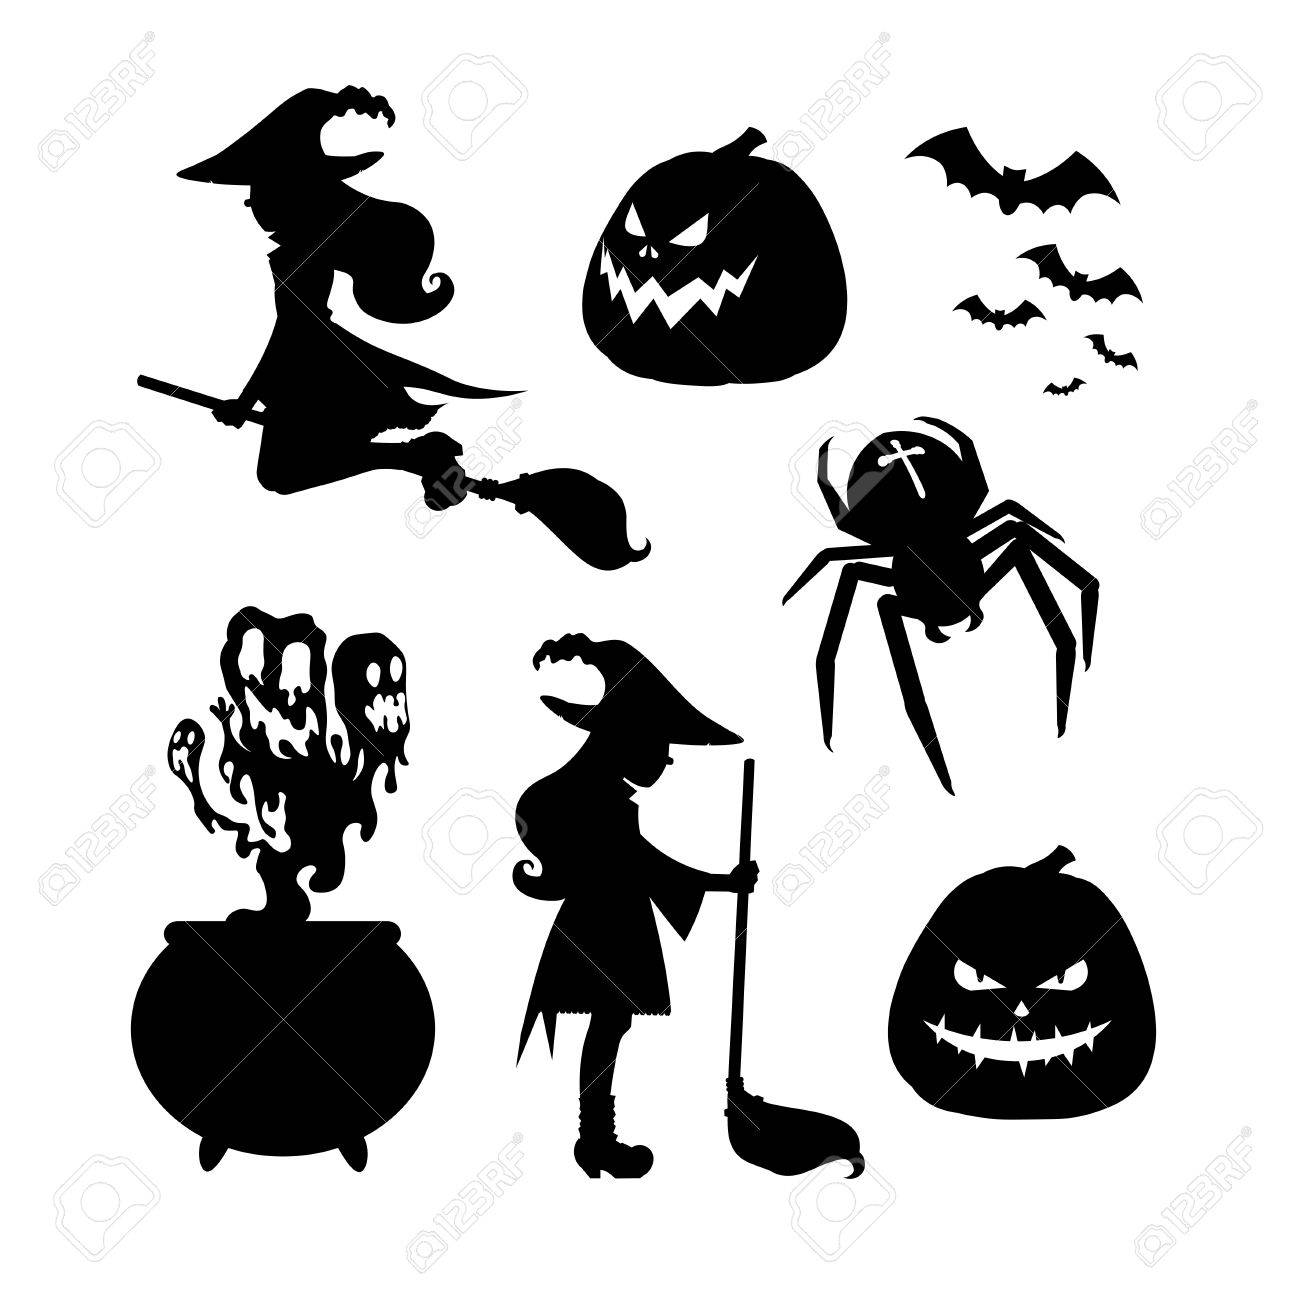 Set Of Halloween Silhouettes A Witch With A Broom Witch Flying